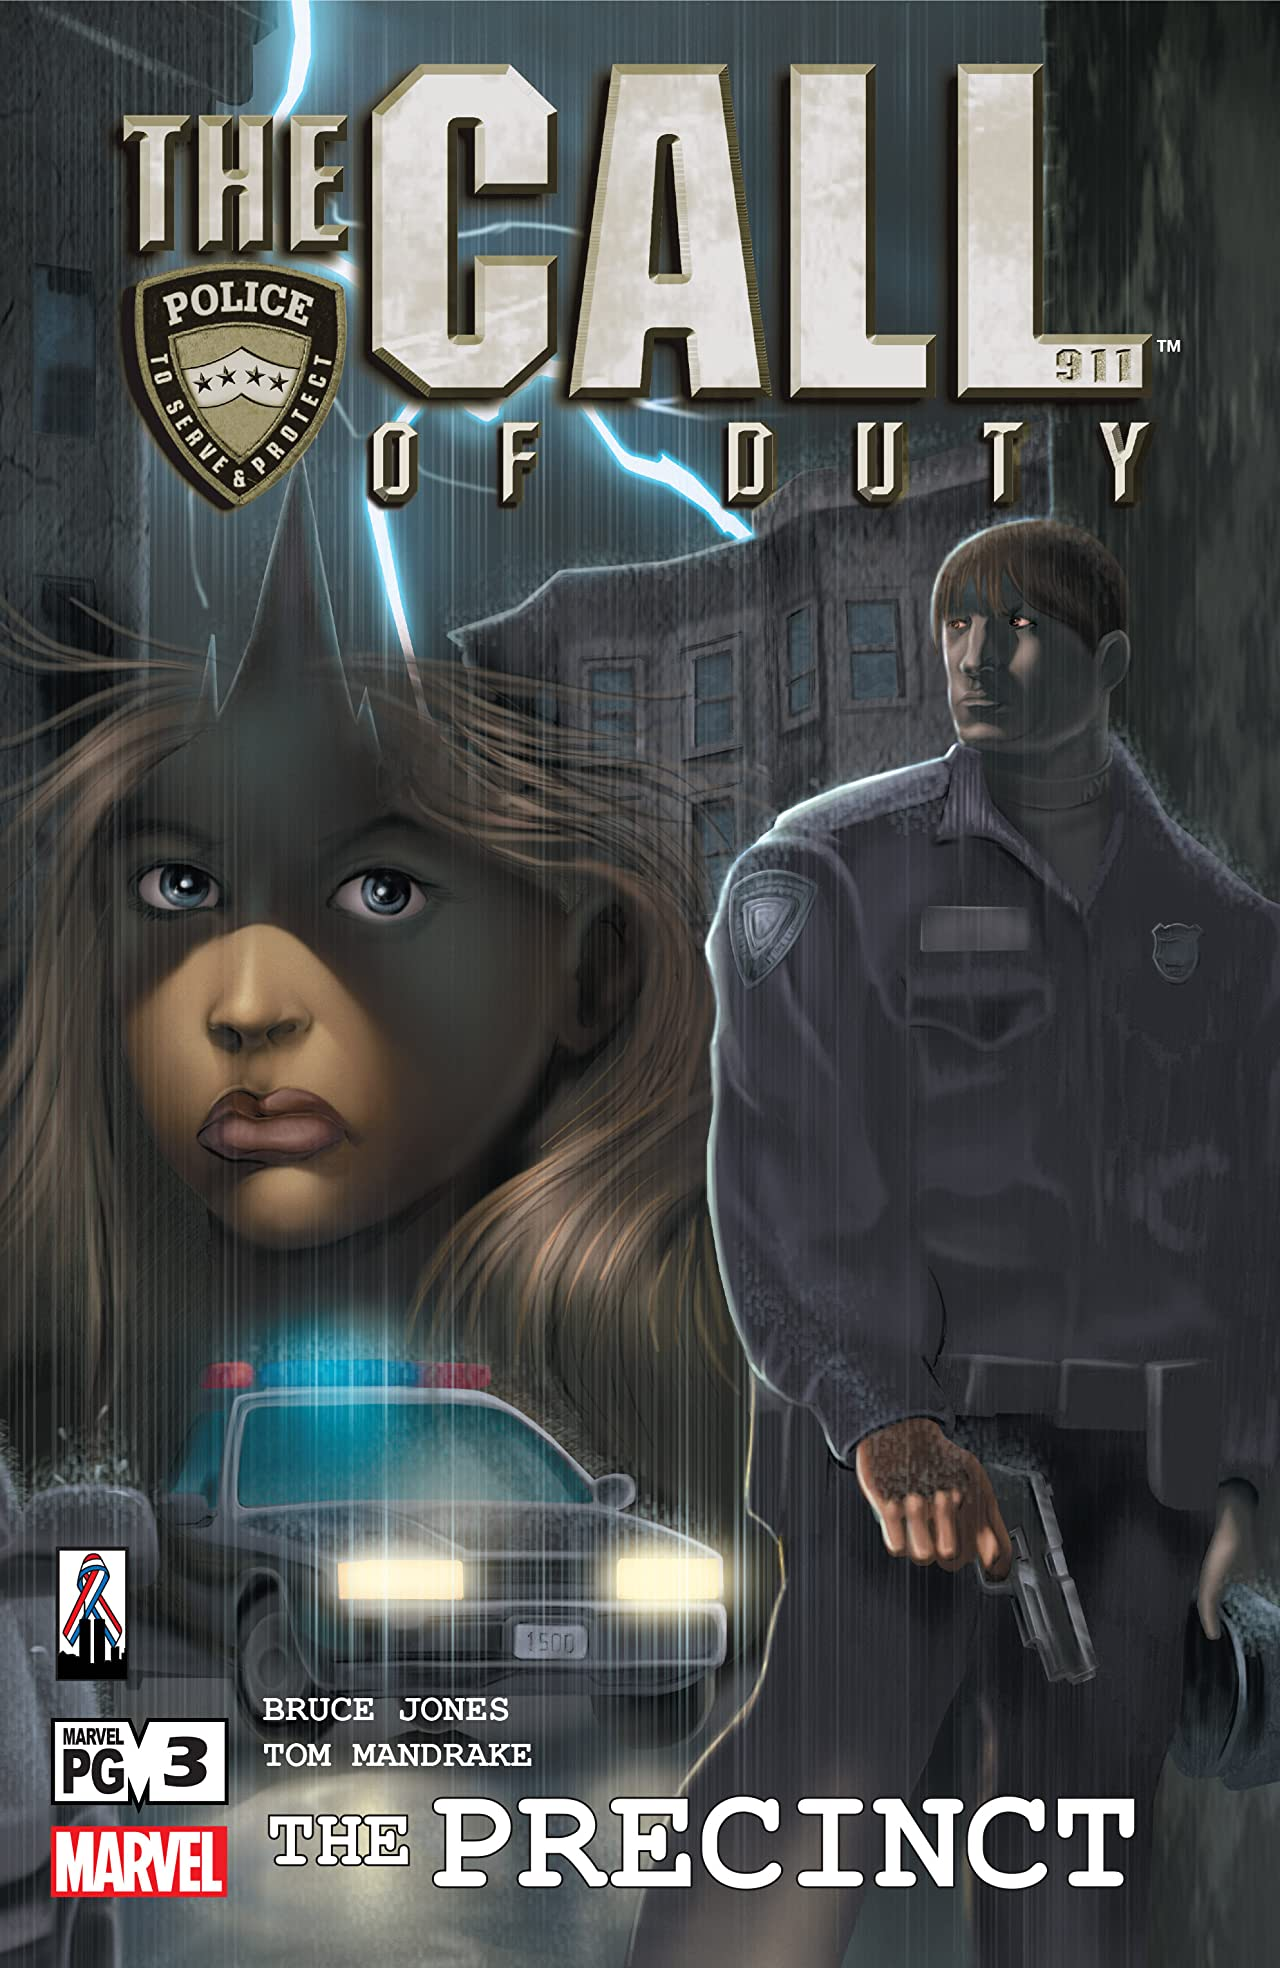 The Call of Duty: The Precinct (2002) #3 (of 5)